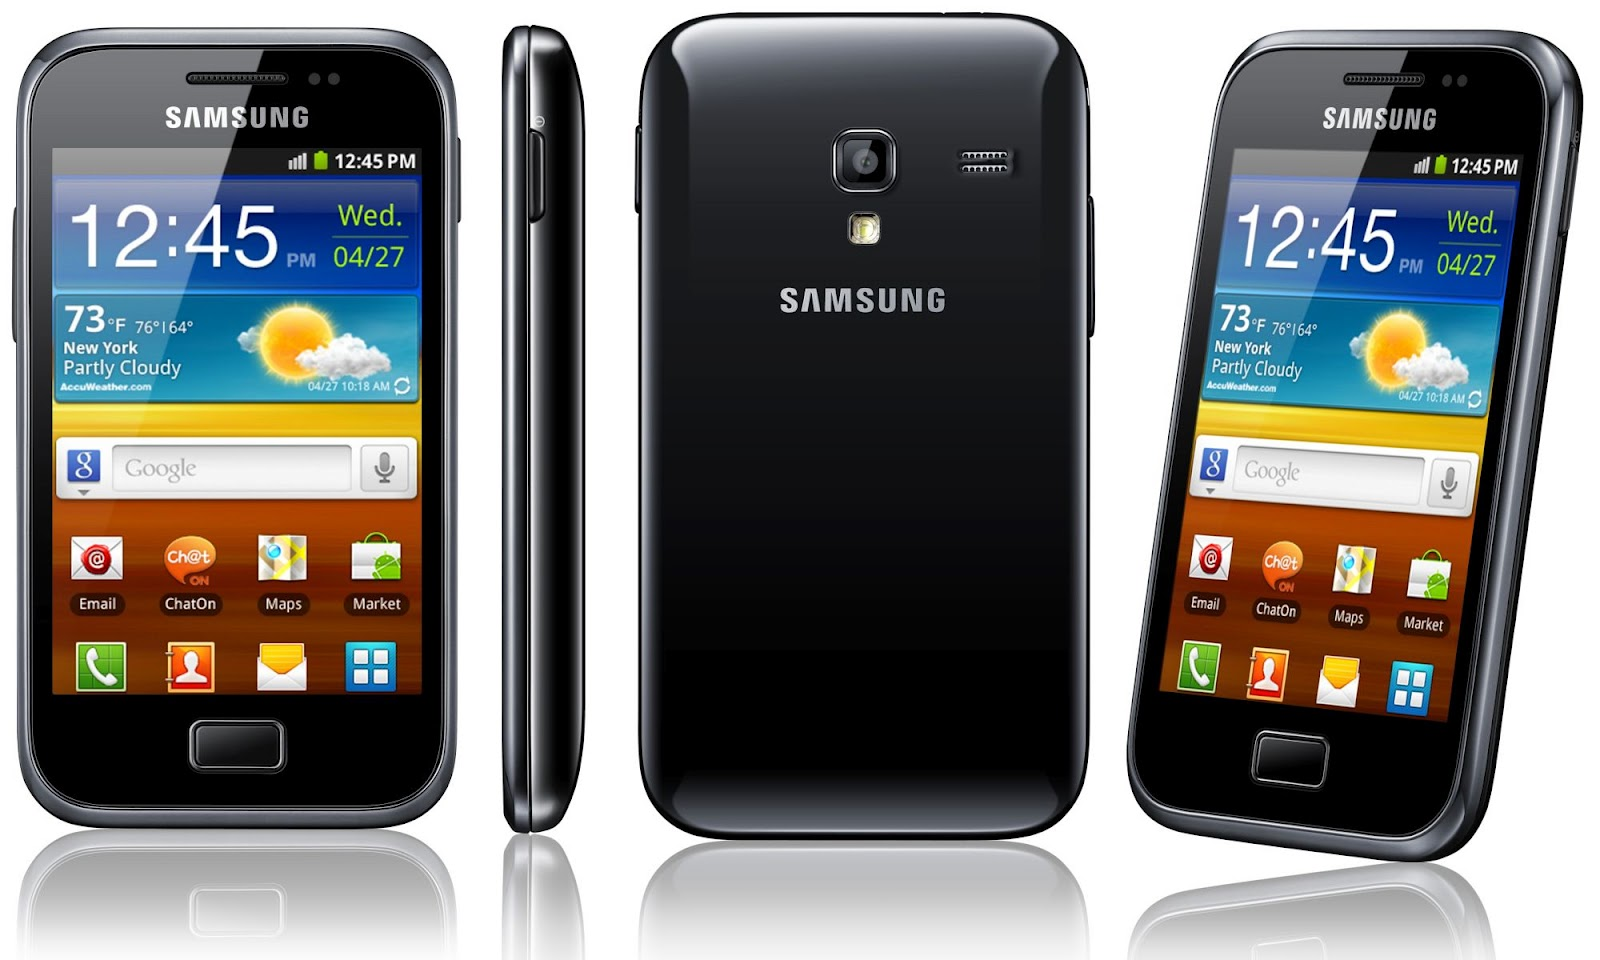 Samsung Galaxy Ace Plus S7500 Specifications,Features,Price,Review